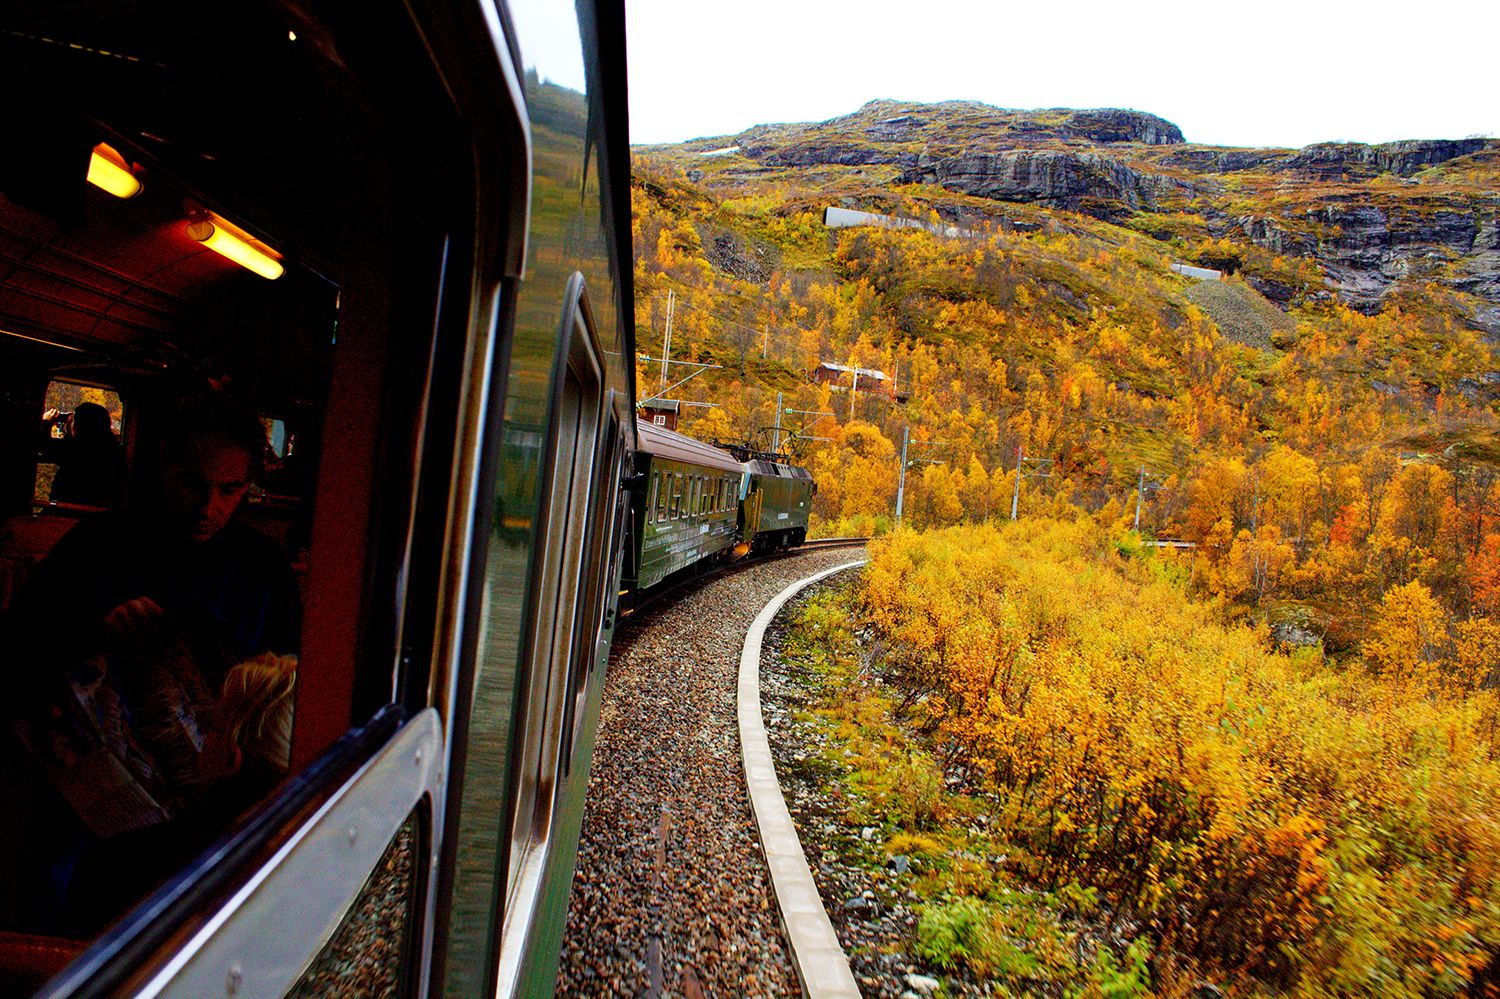 Boarding Norway's Most Famous Train the Flåm Norway